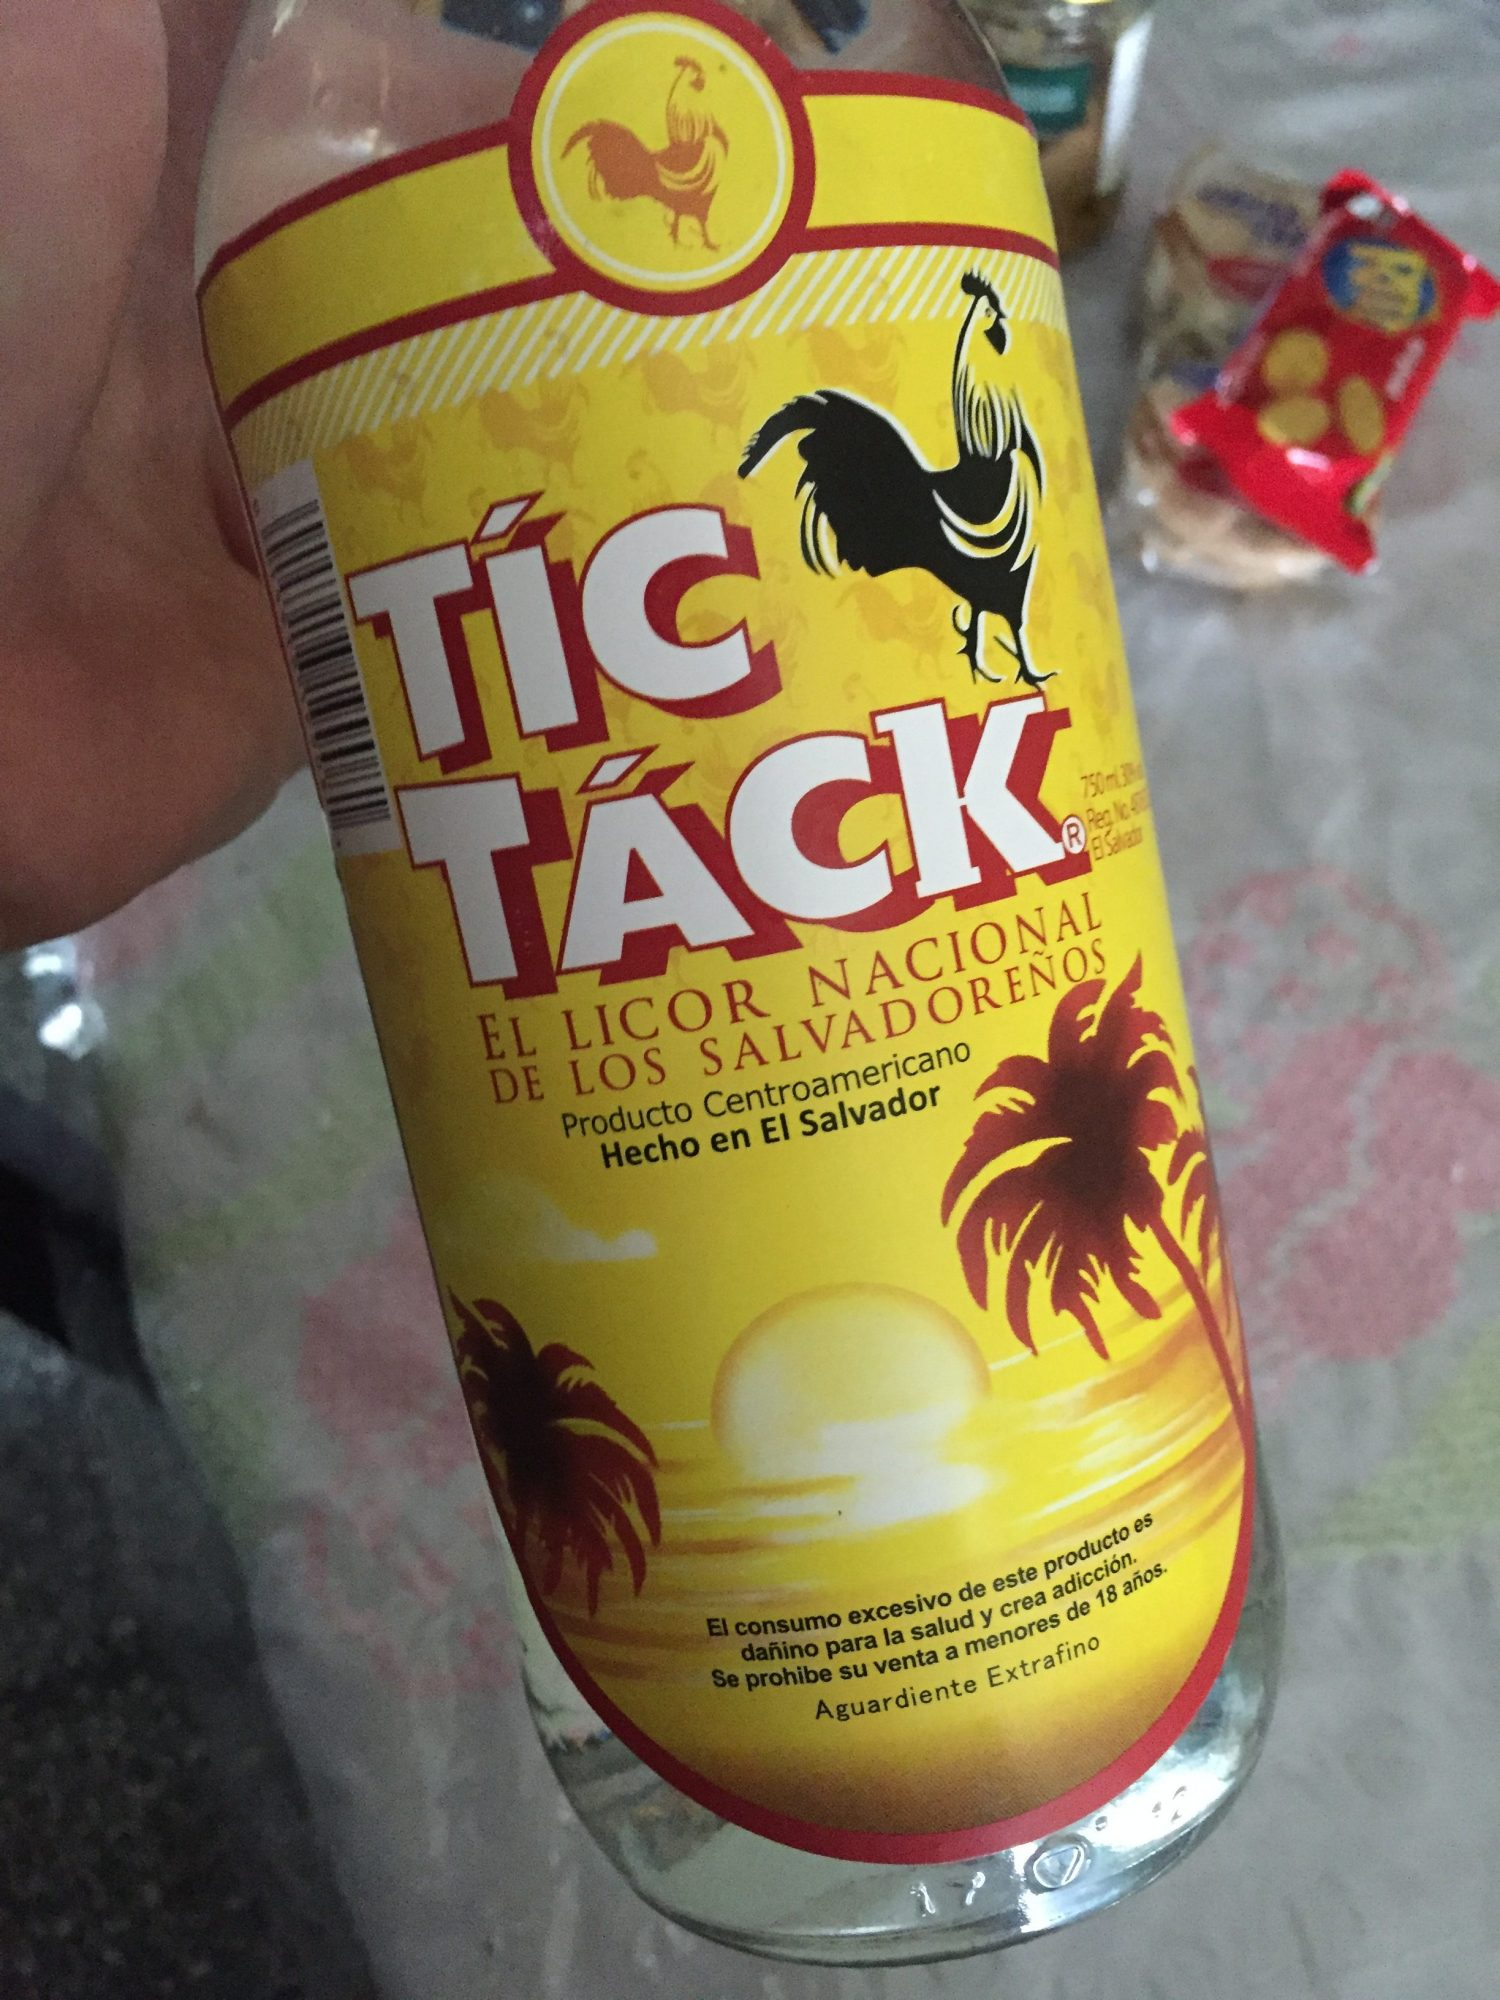 Tic Tac – The national liquor of El Salvador